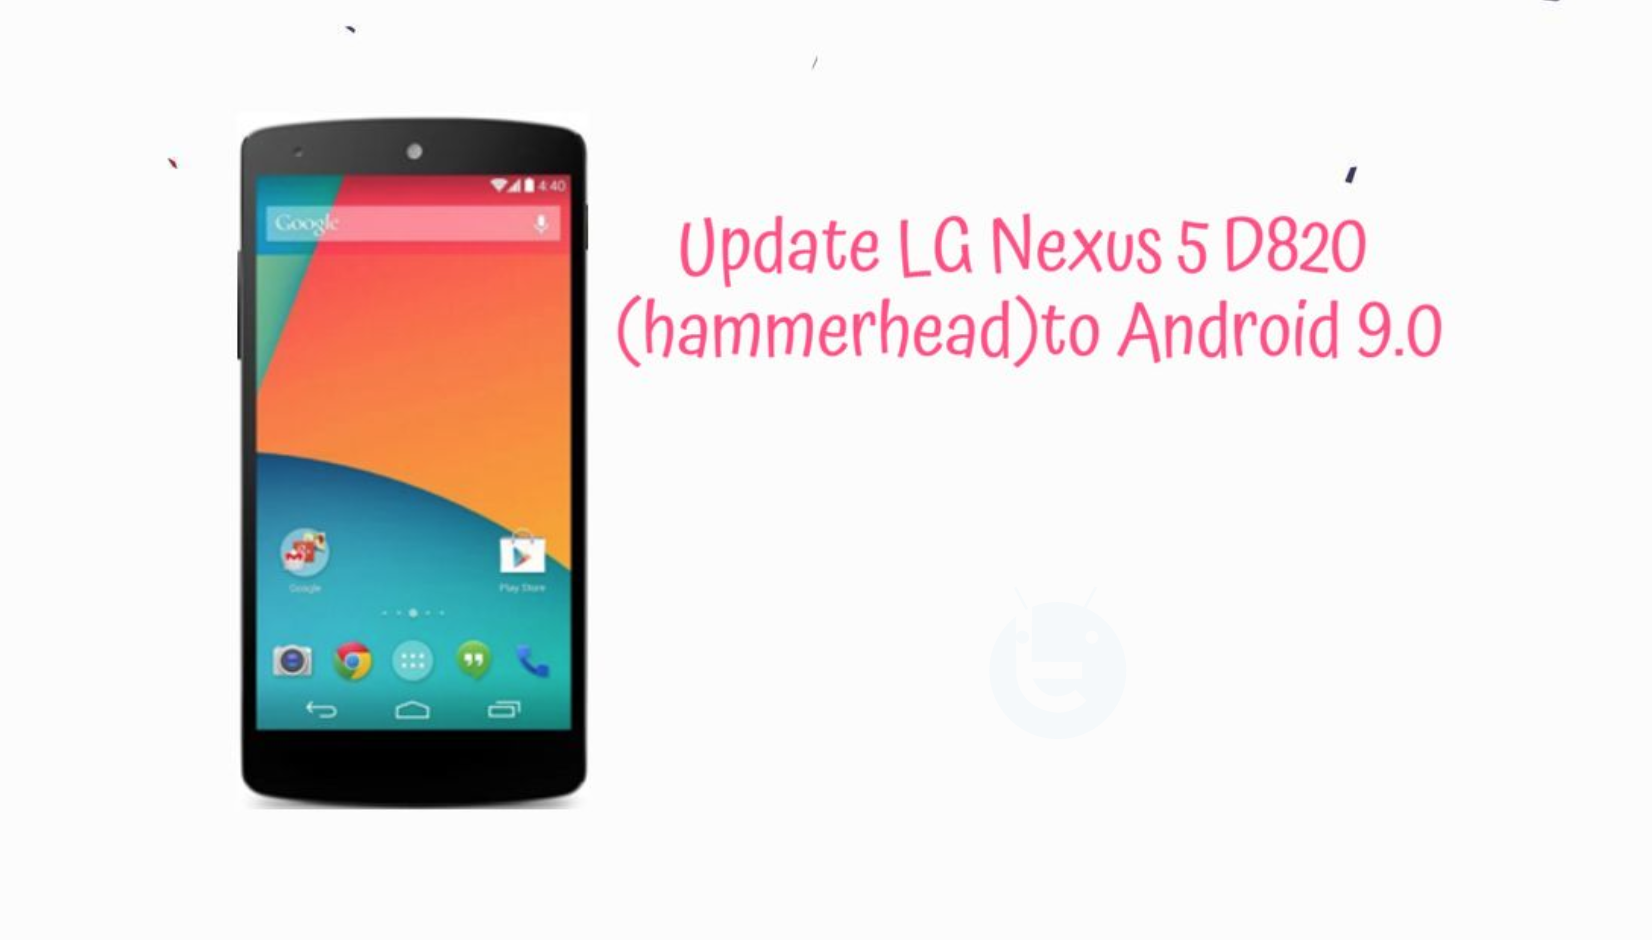 Update LG Nexus 5 D820 (hammerhead) to Android 9.0